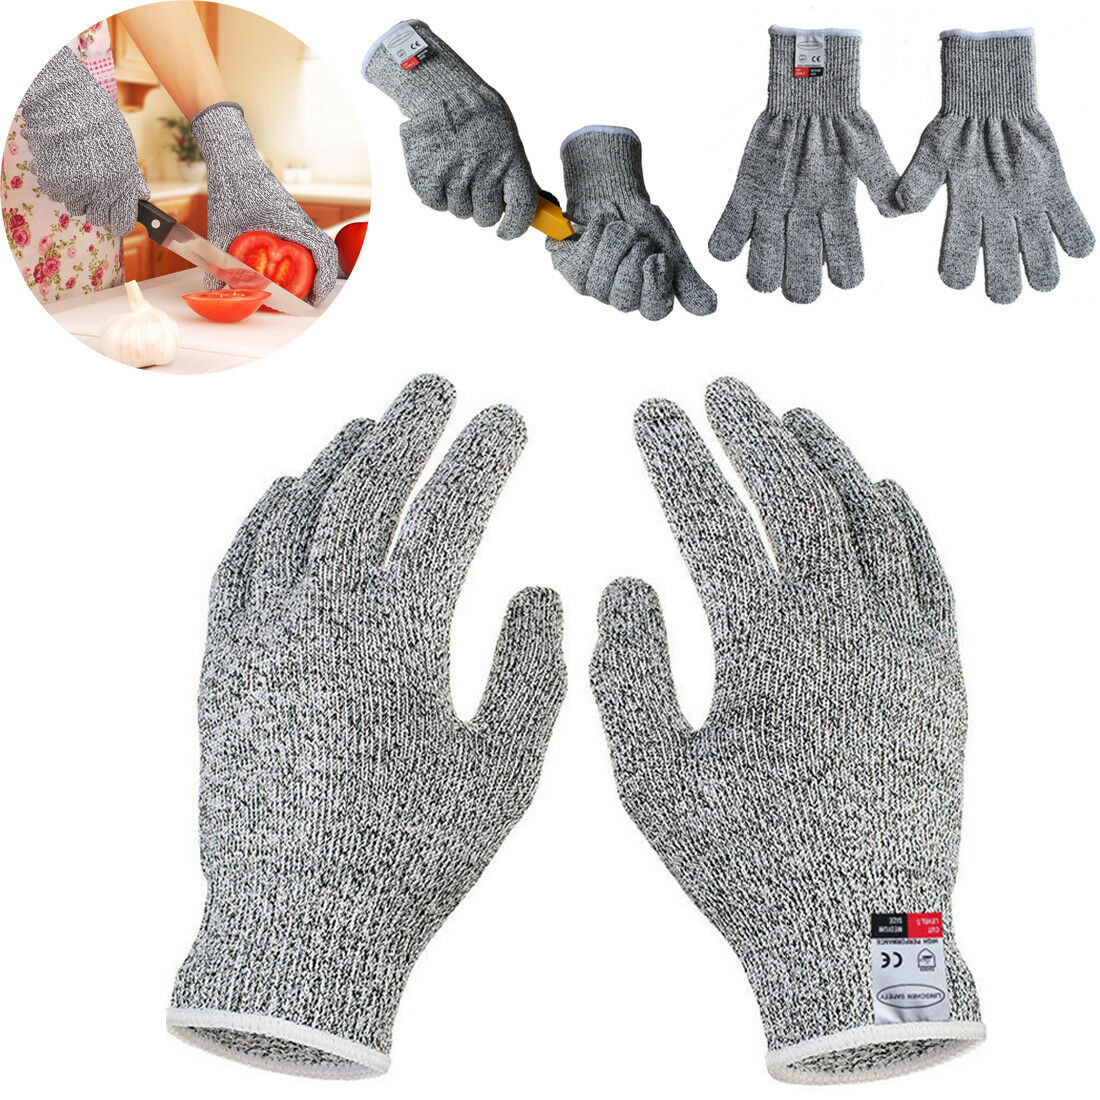 Everything You Need to Know About Anti-Cut Gloves - Reaching World Live